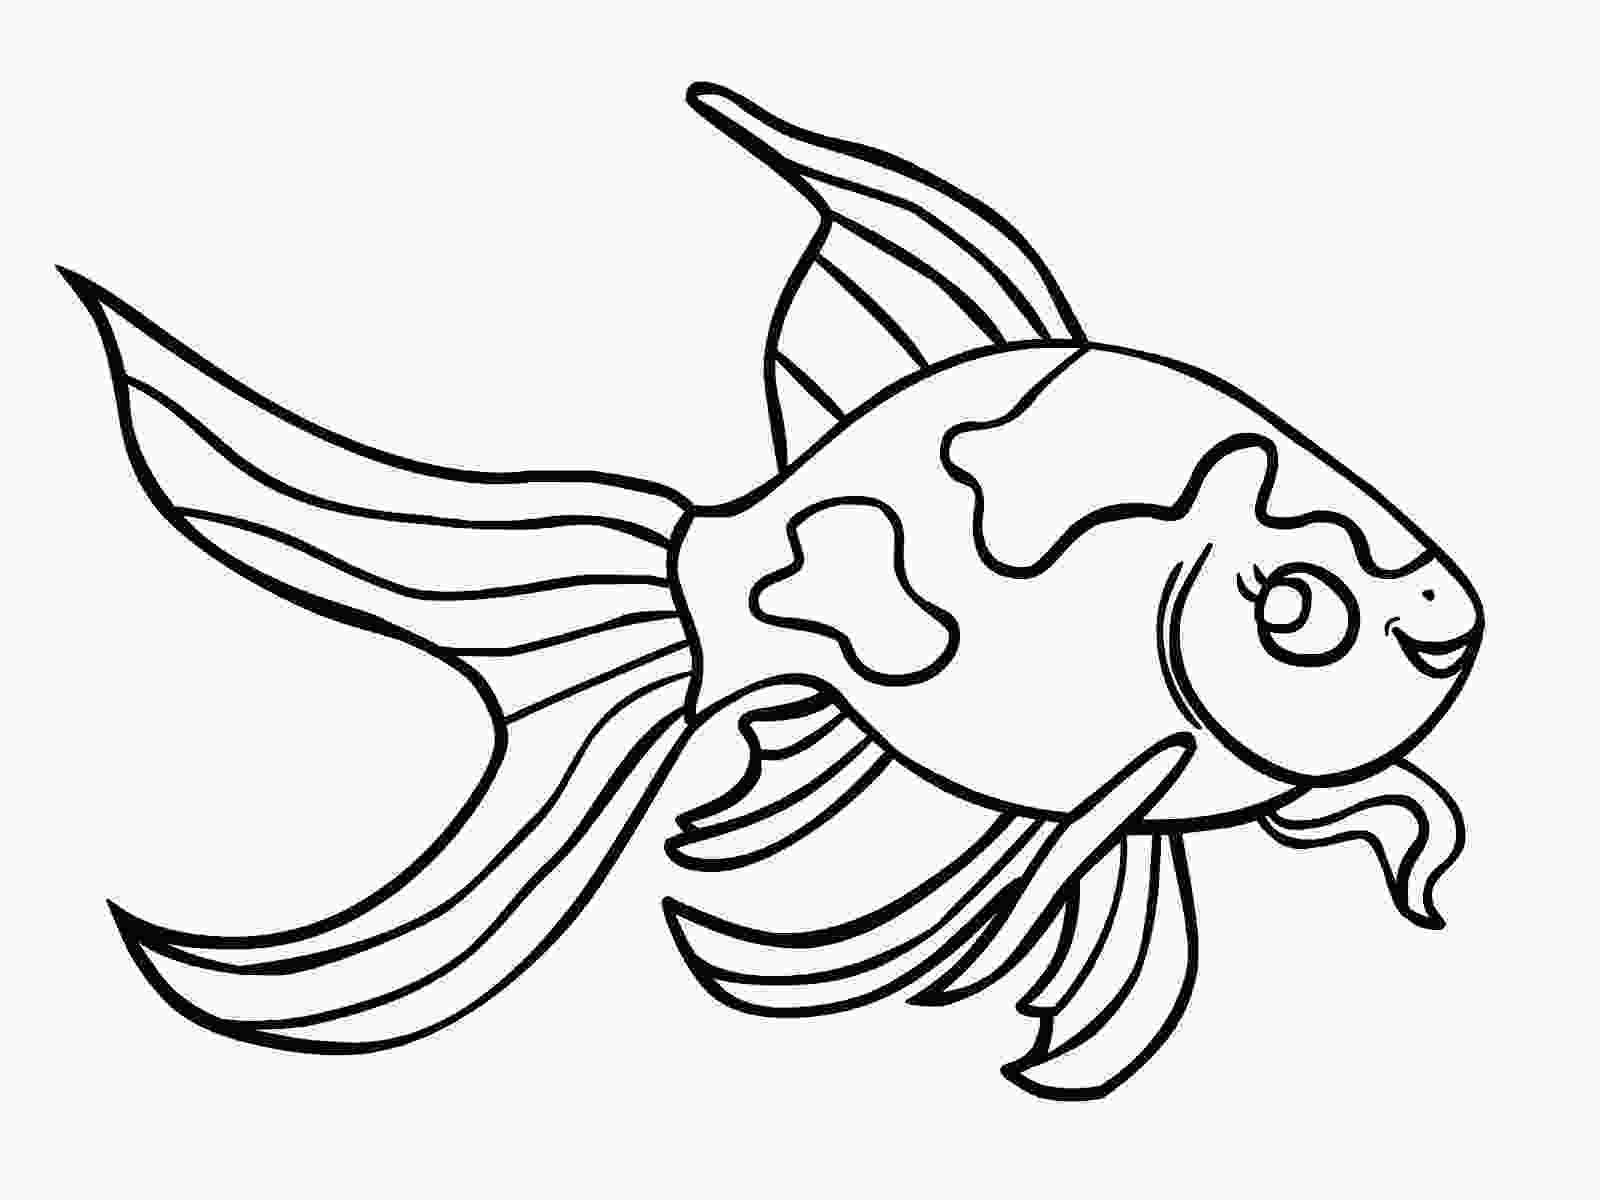 Fish To Color Printable Fish Coloring Page Valentines Day Coloring Page Animal Coloring Pages